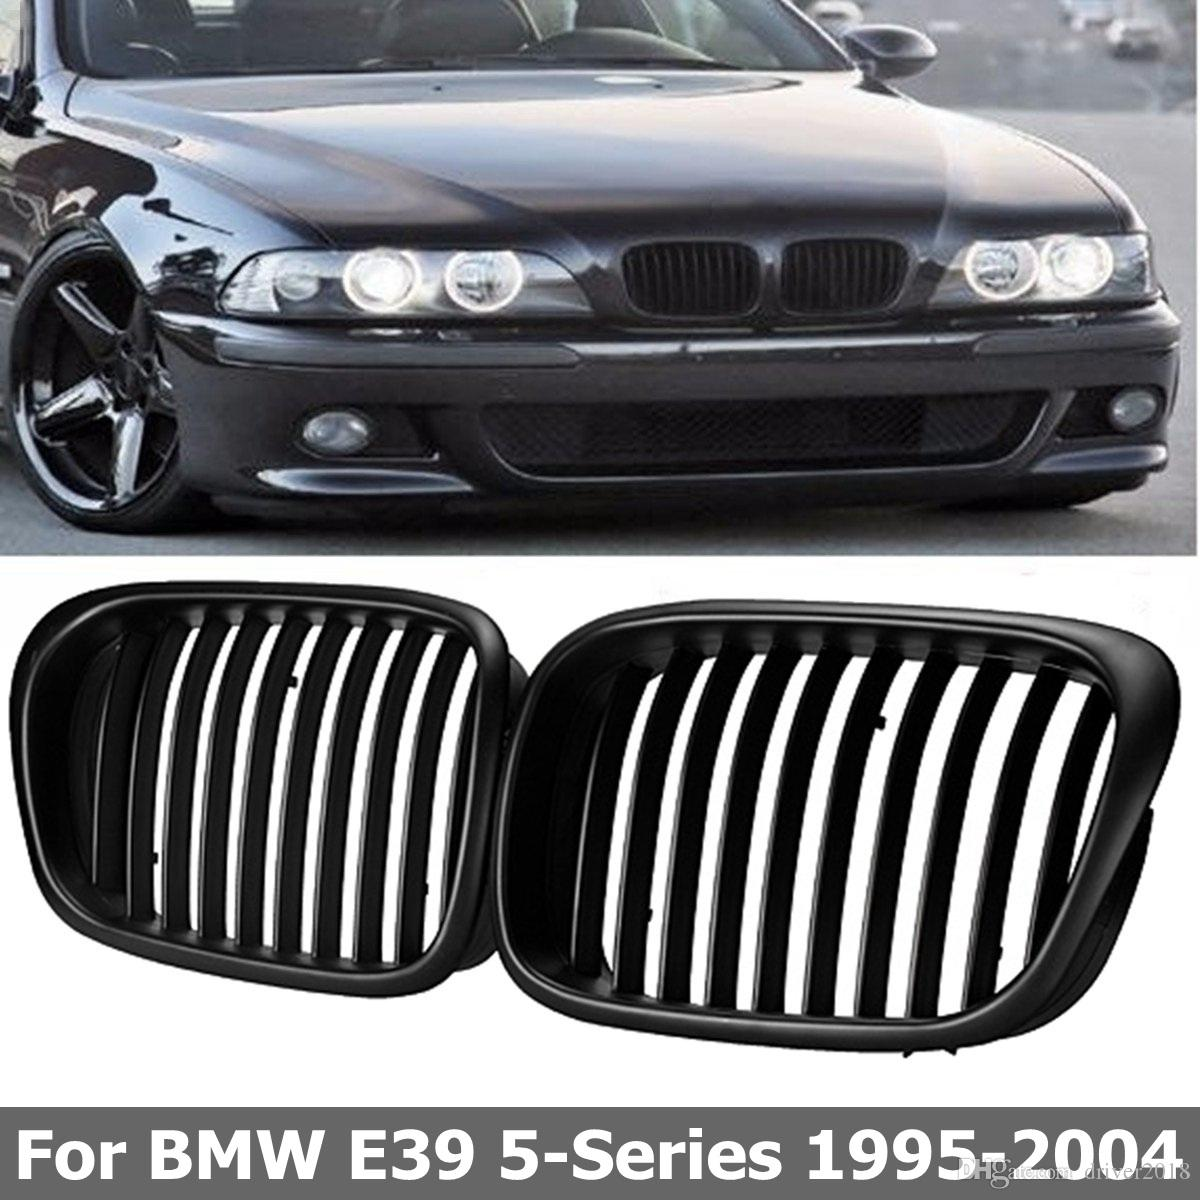 hight resolution of oem style car front black wide kidney grille grill for bmw e39 5 series 1997 1998 1999 2000 2001 2002 2003 car interior accessories car interior and